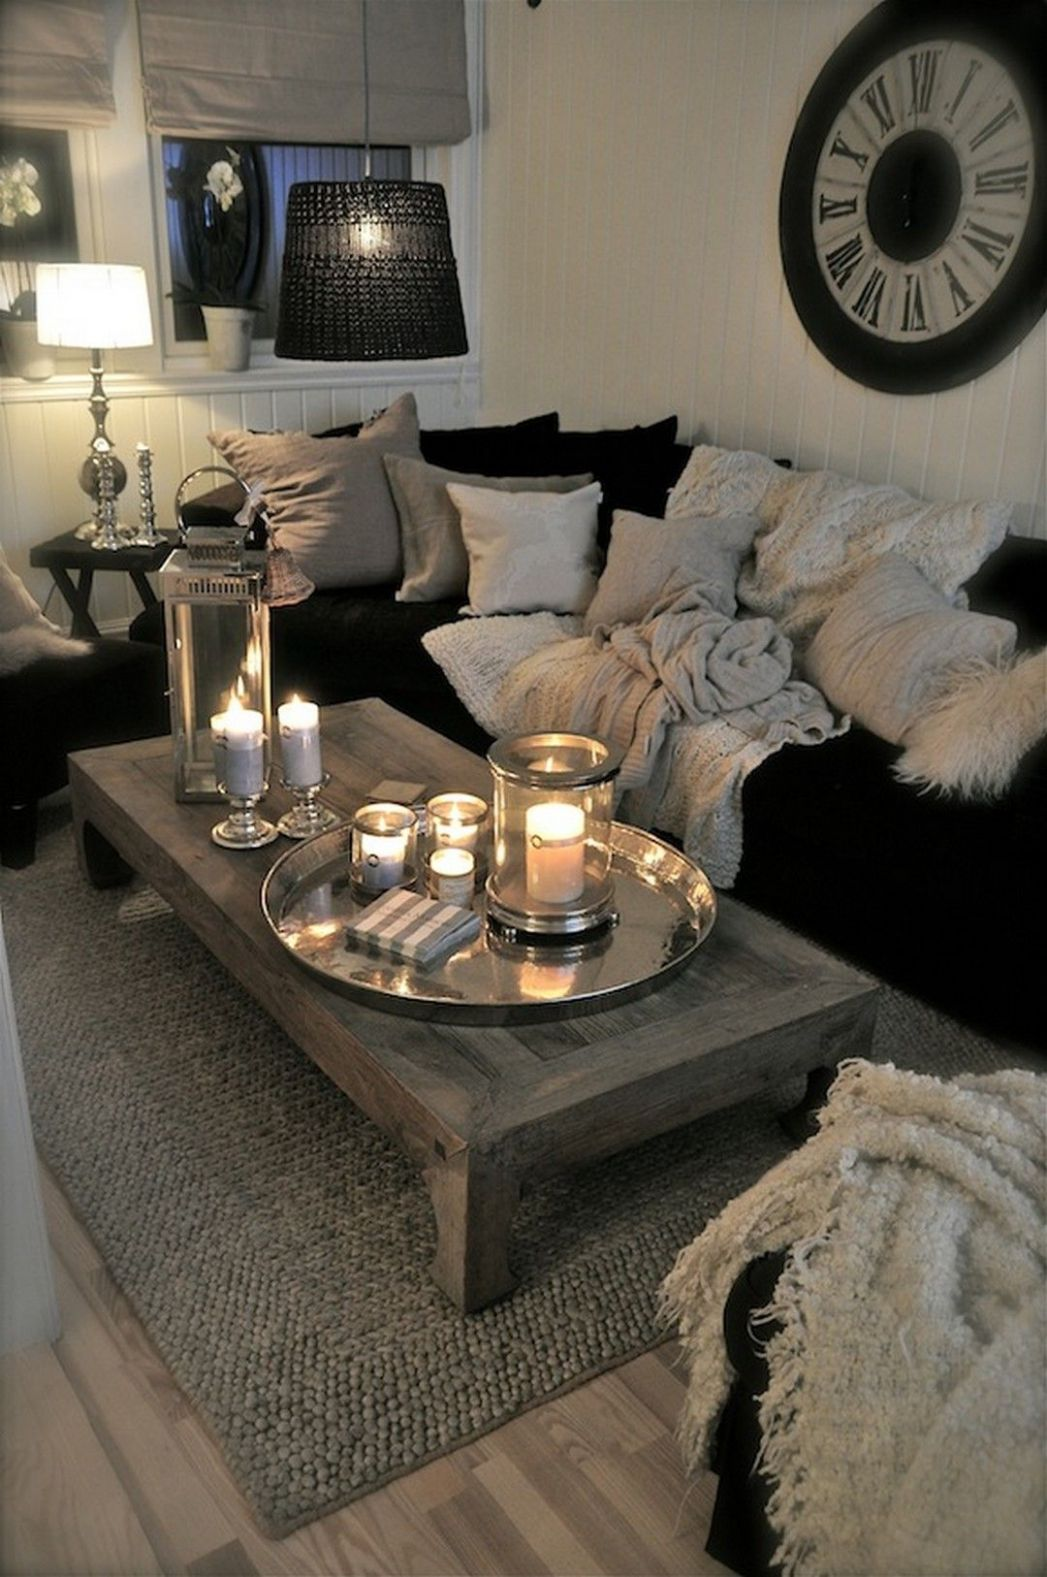 11 Easy DIY First Apartement Decorating Ideas | Rooms home decor ..